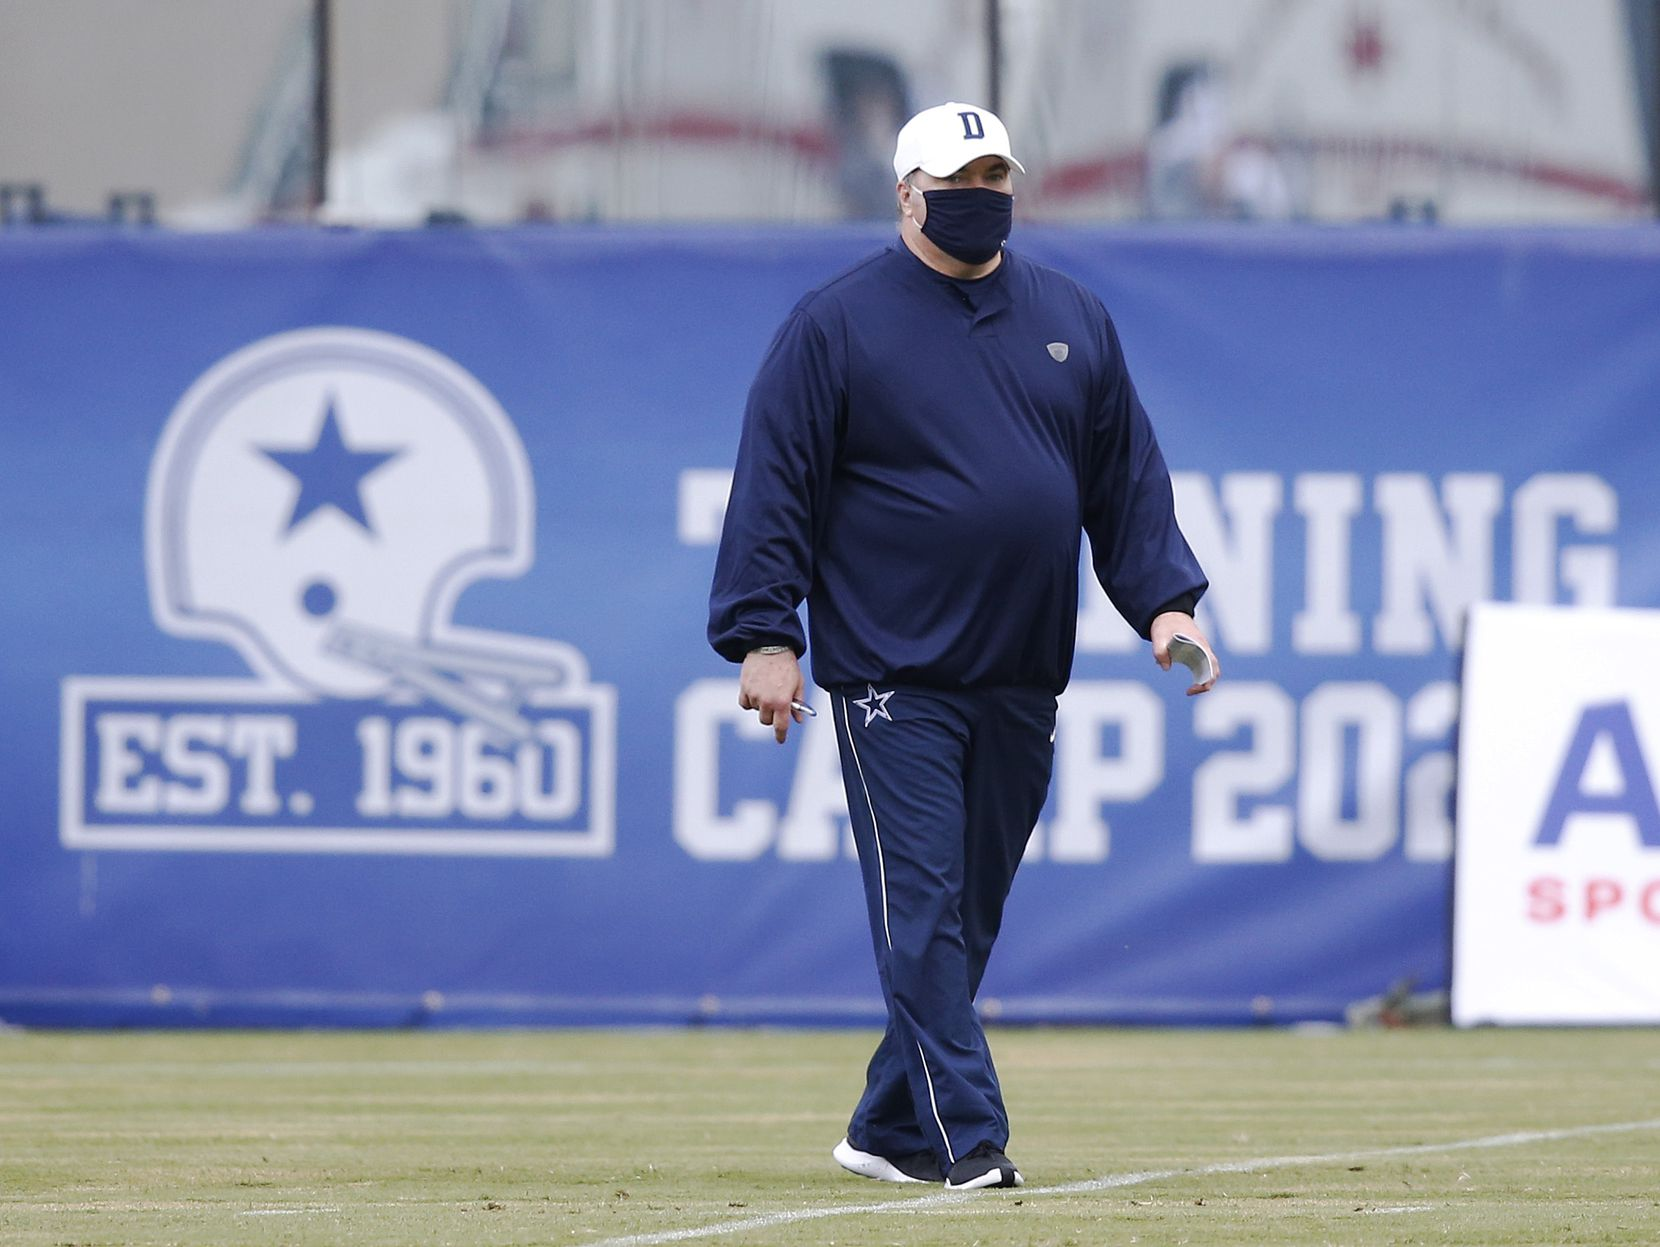 Dallas Cowboys head coach Mike McCarthy walks the field at practice during training camp at The Star in Frisco, Texas on Thursday, September 3, 2020.